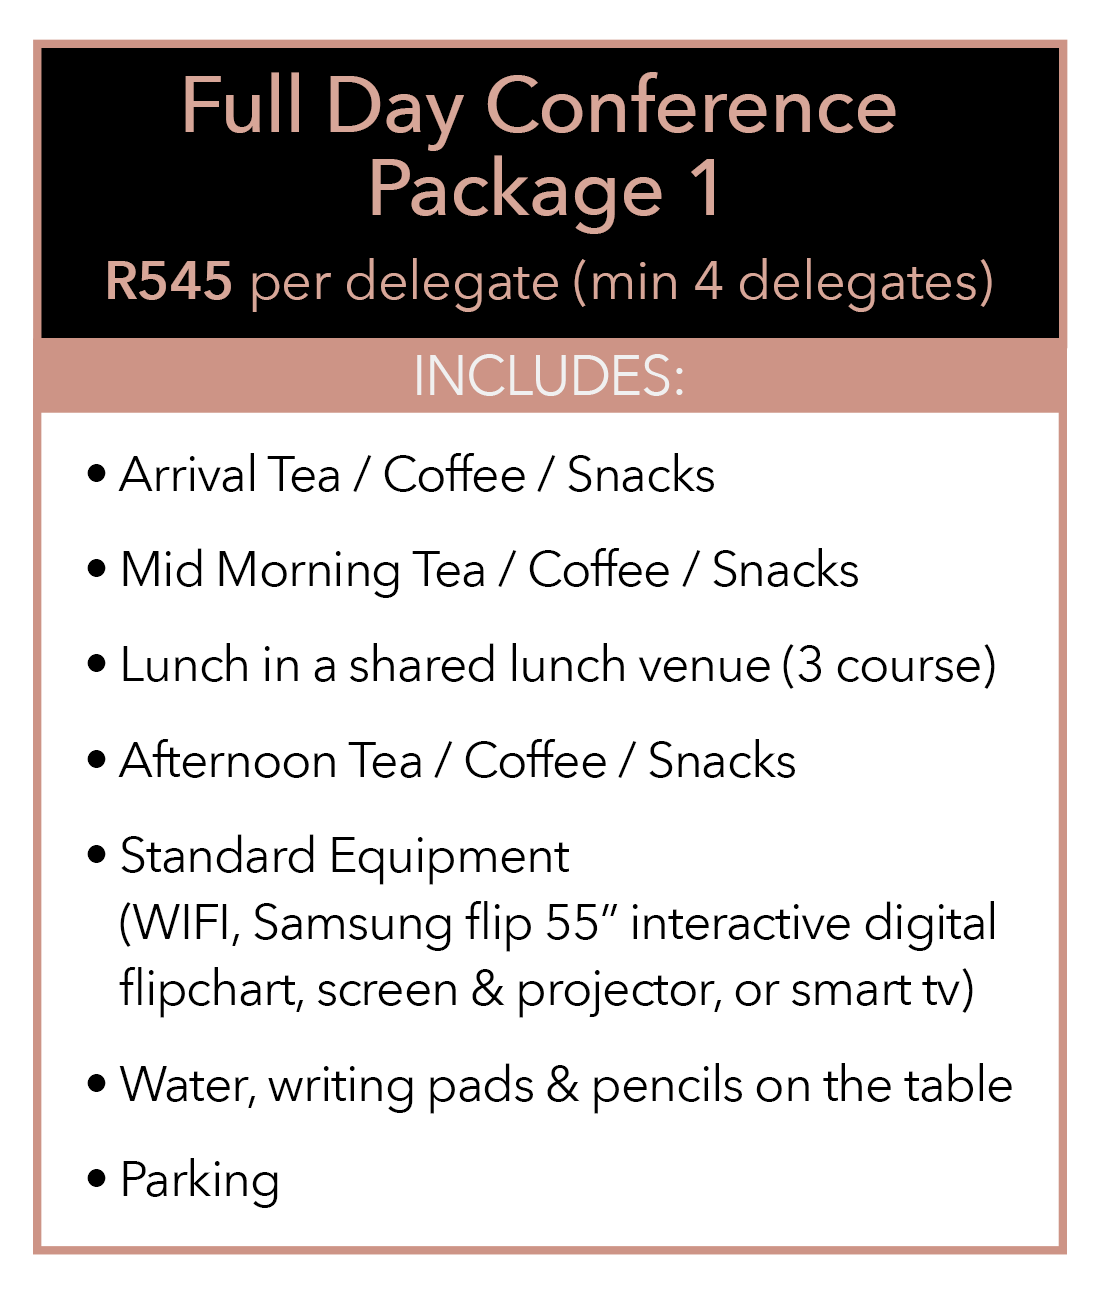 Full Day Package at Hotel Sky Sandton